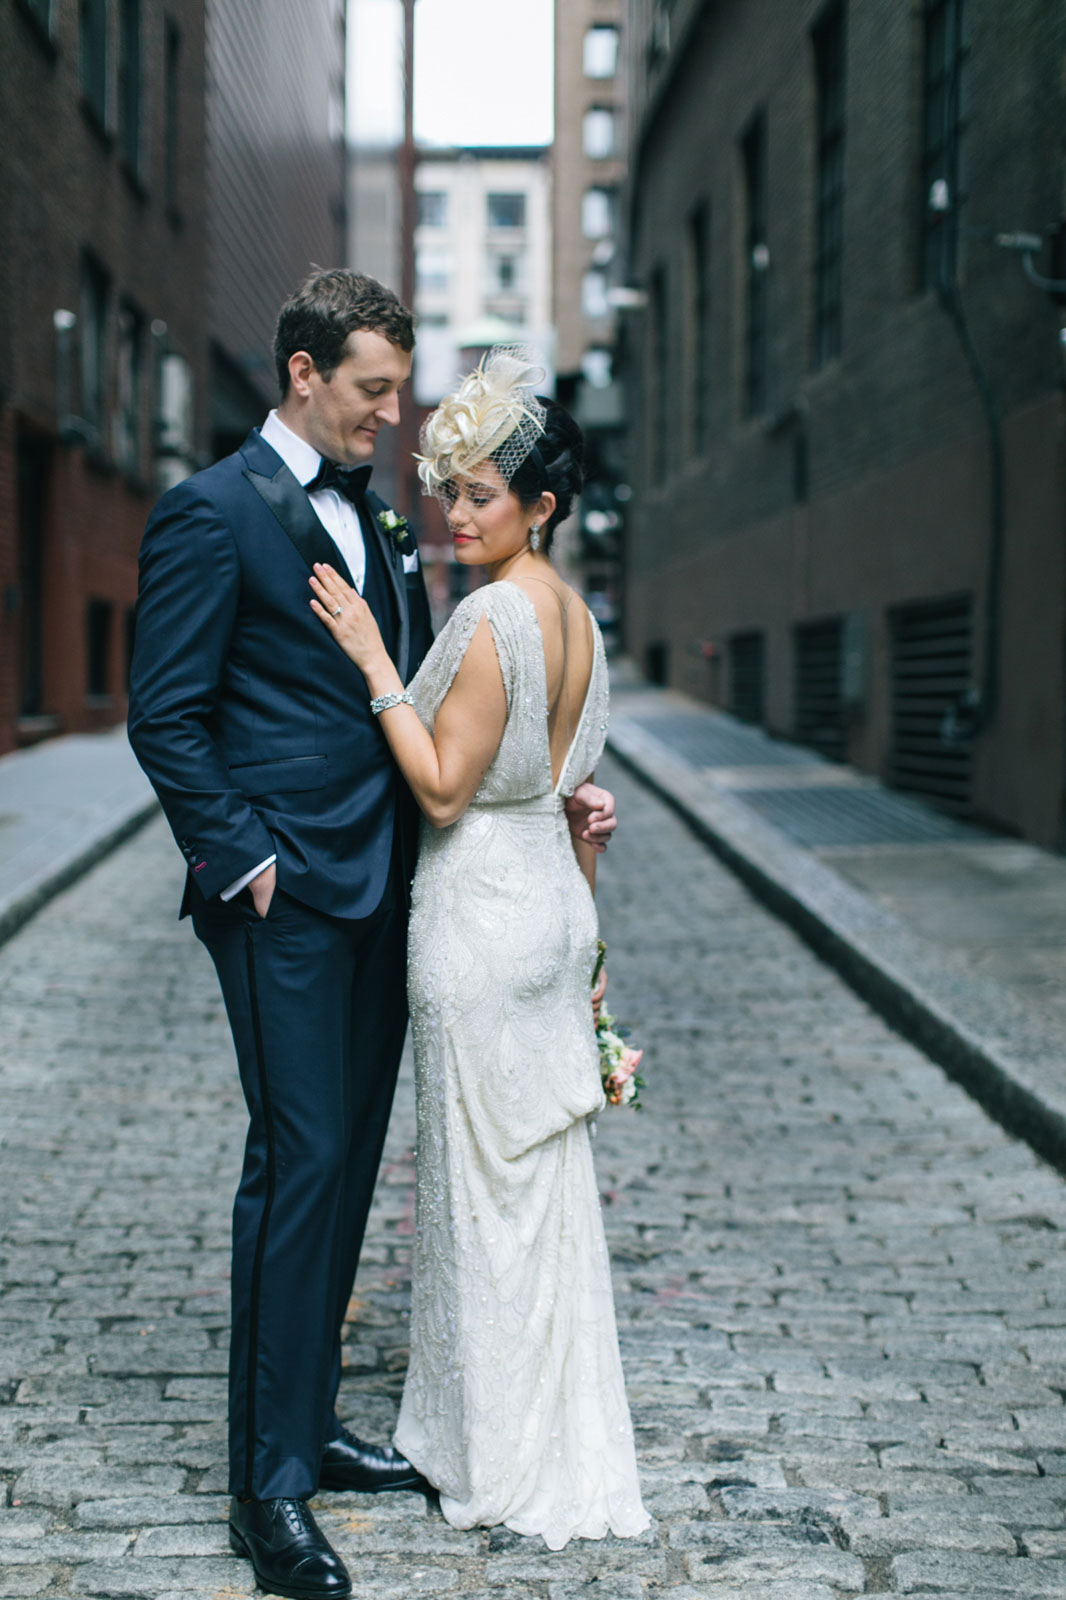 Intimate portait of bride and groom standing in alleyway, art deco inspired bridal style